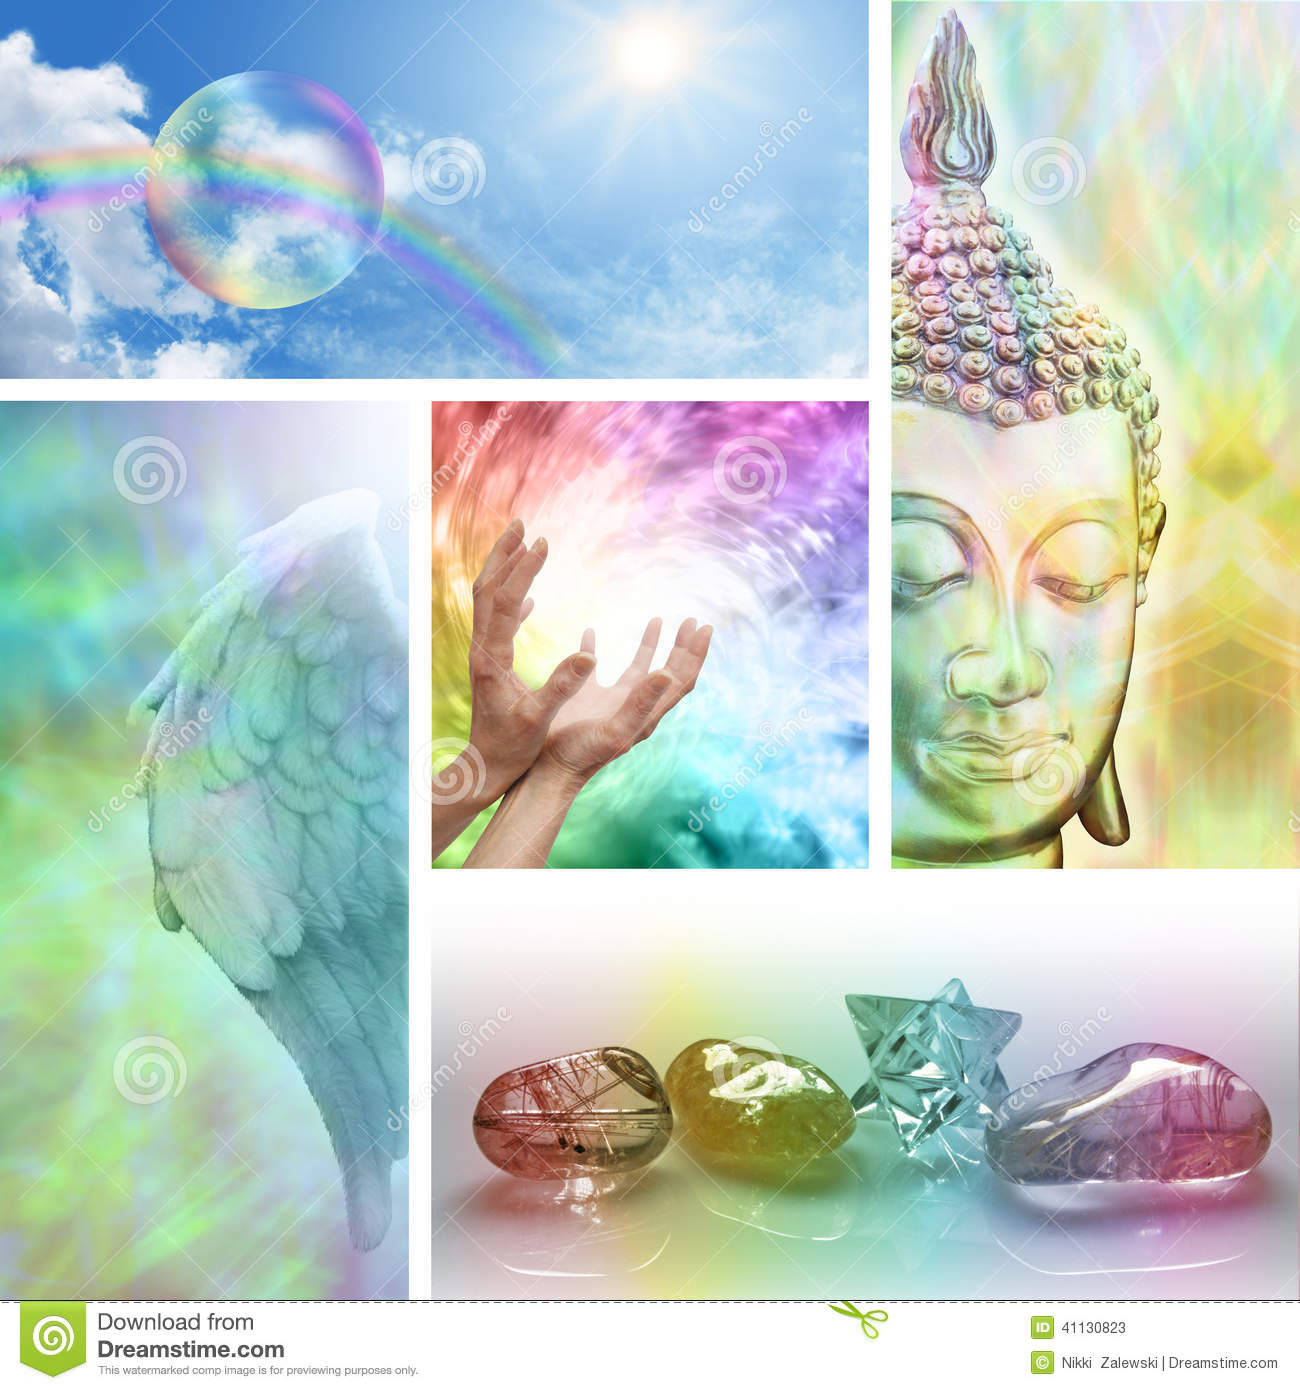 dreams physical and metaphysical aspect essay Levels of dreaming and the makeup of the human being: the spiritual ontology of dreams summary: this essay examines the source of different types of dreams in the spiritual makeup of the human being, composed of physical, etheric, astral, and egoic aspects.